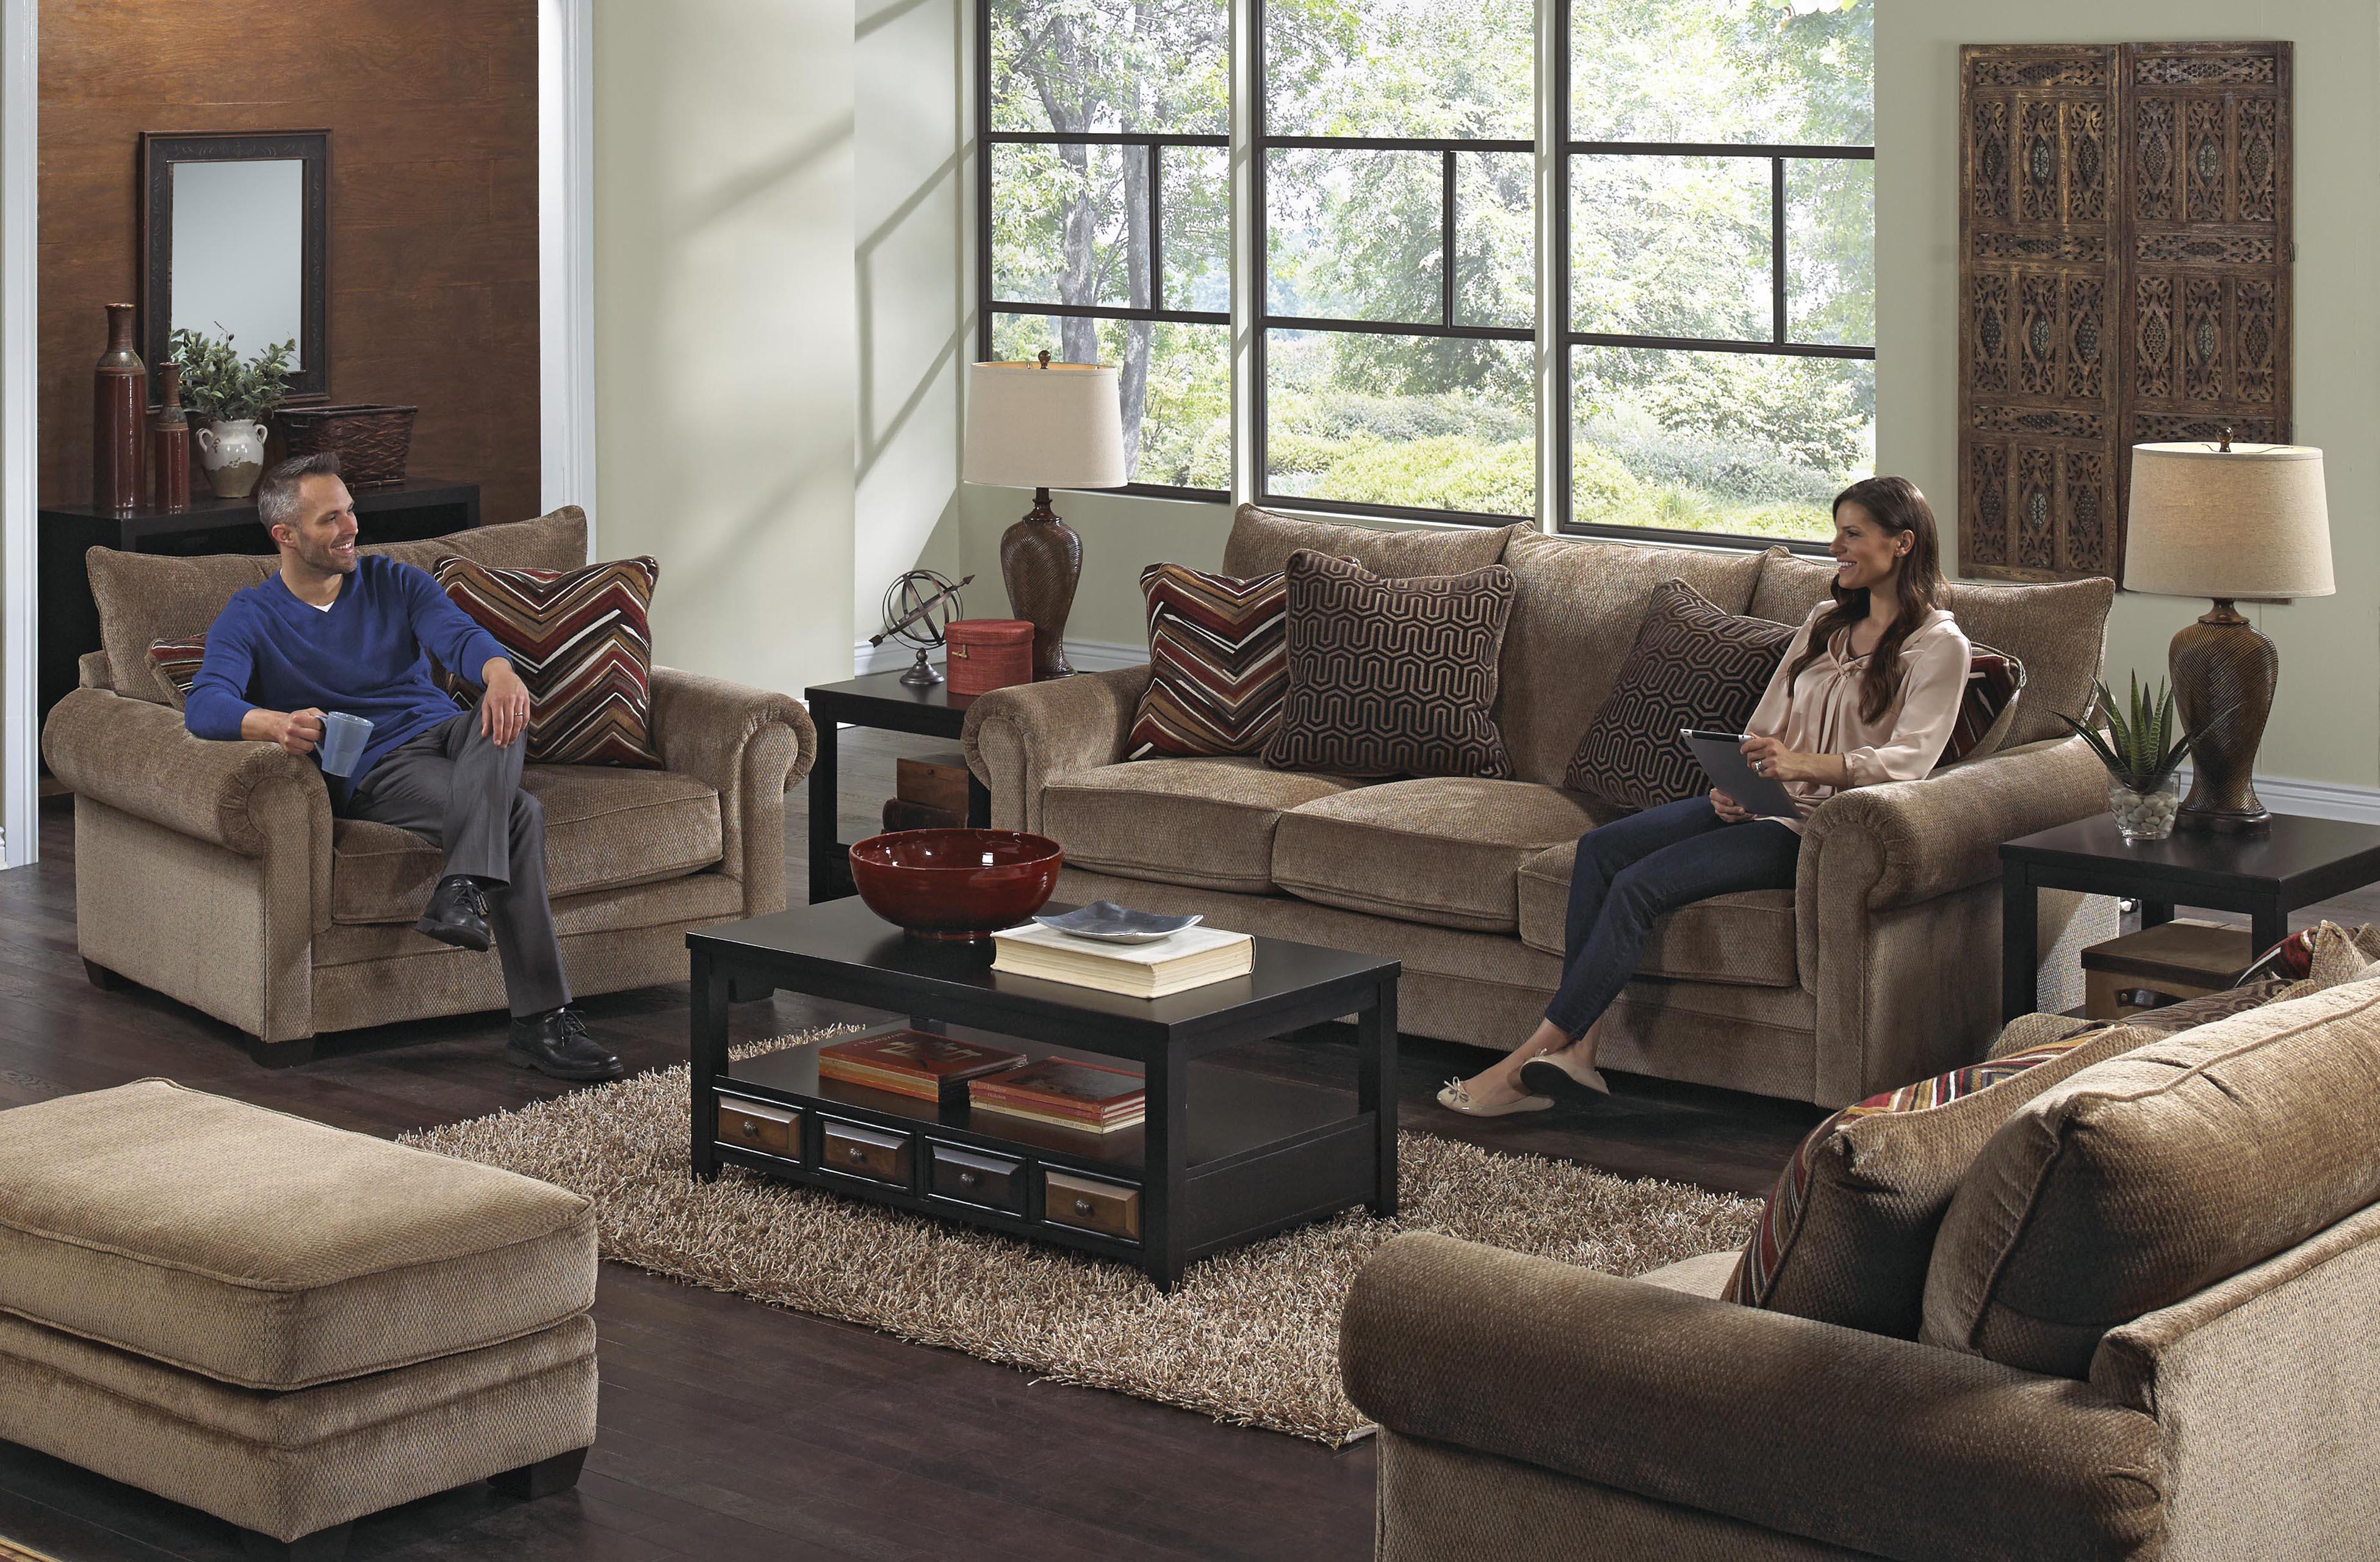 Exceptionnel By Jackson Furniture. Stationary Living Room Group